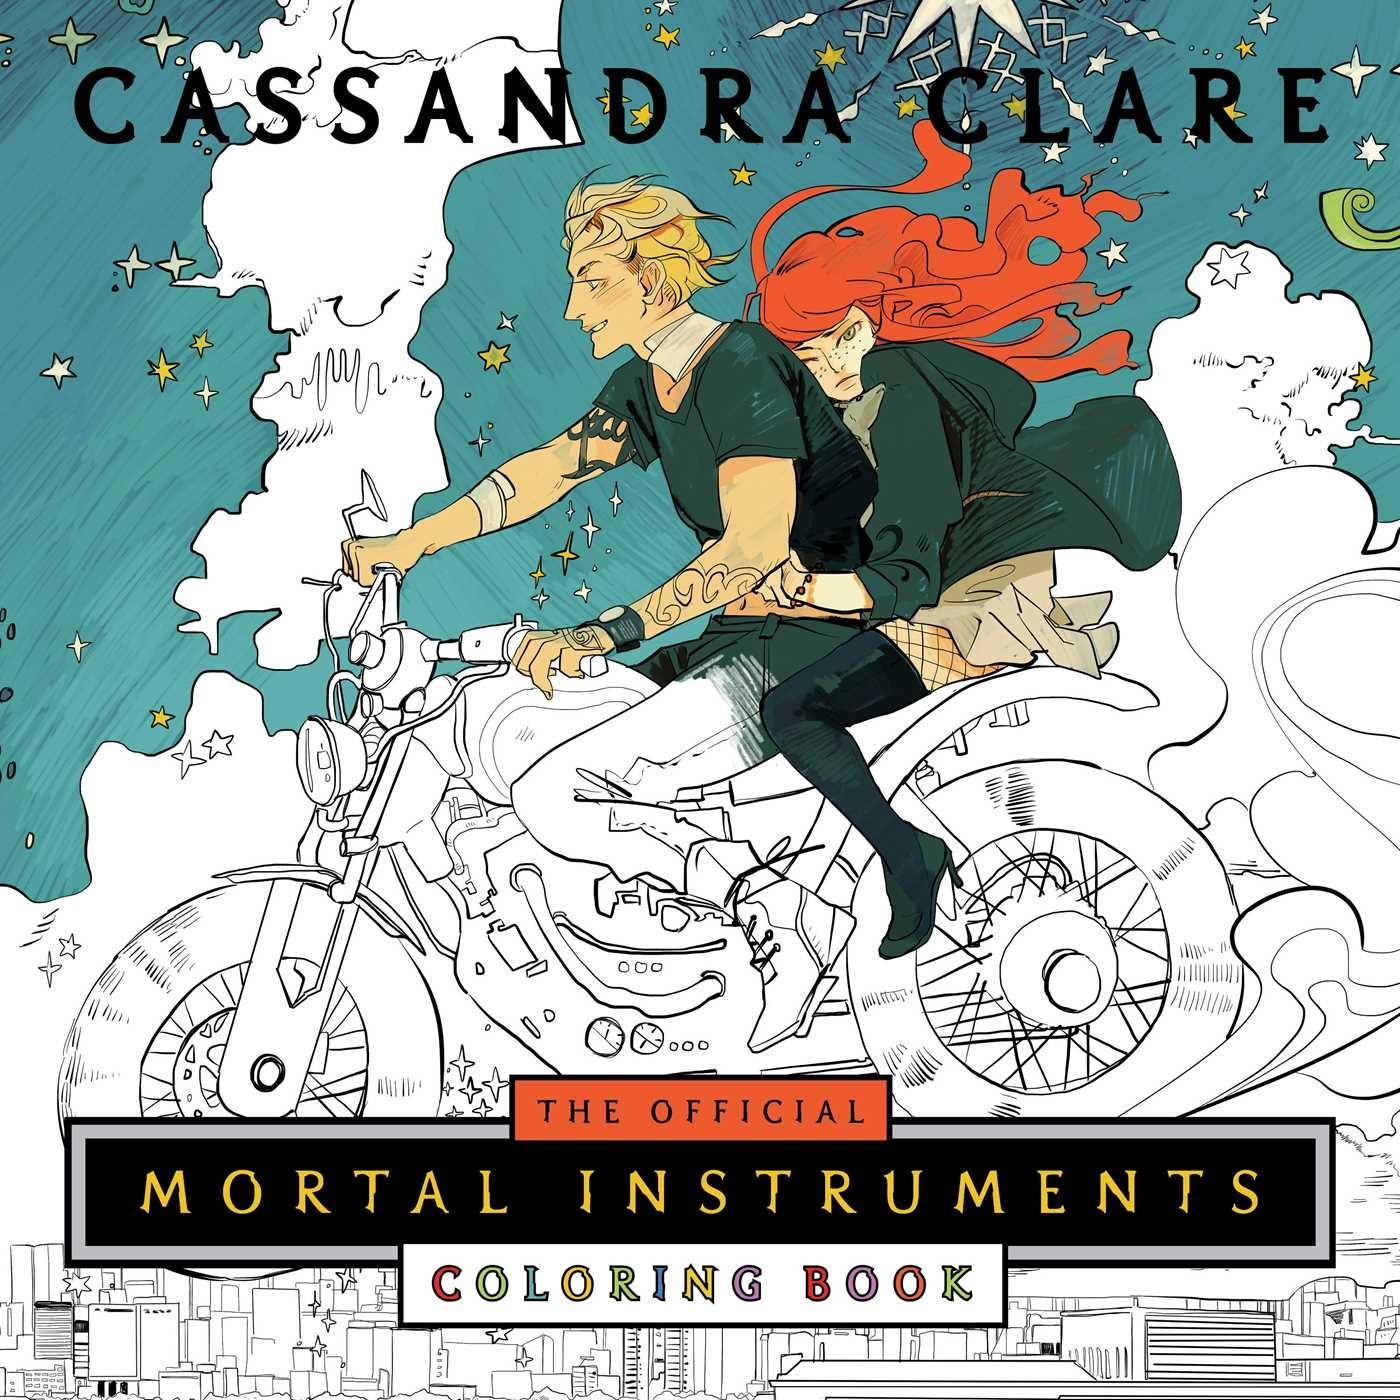 Official Mortal Instruments Coloring Book product image